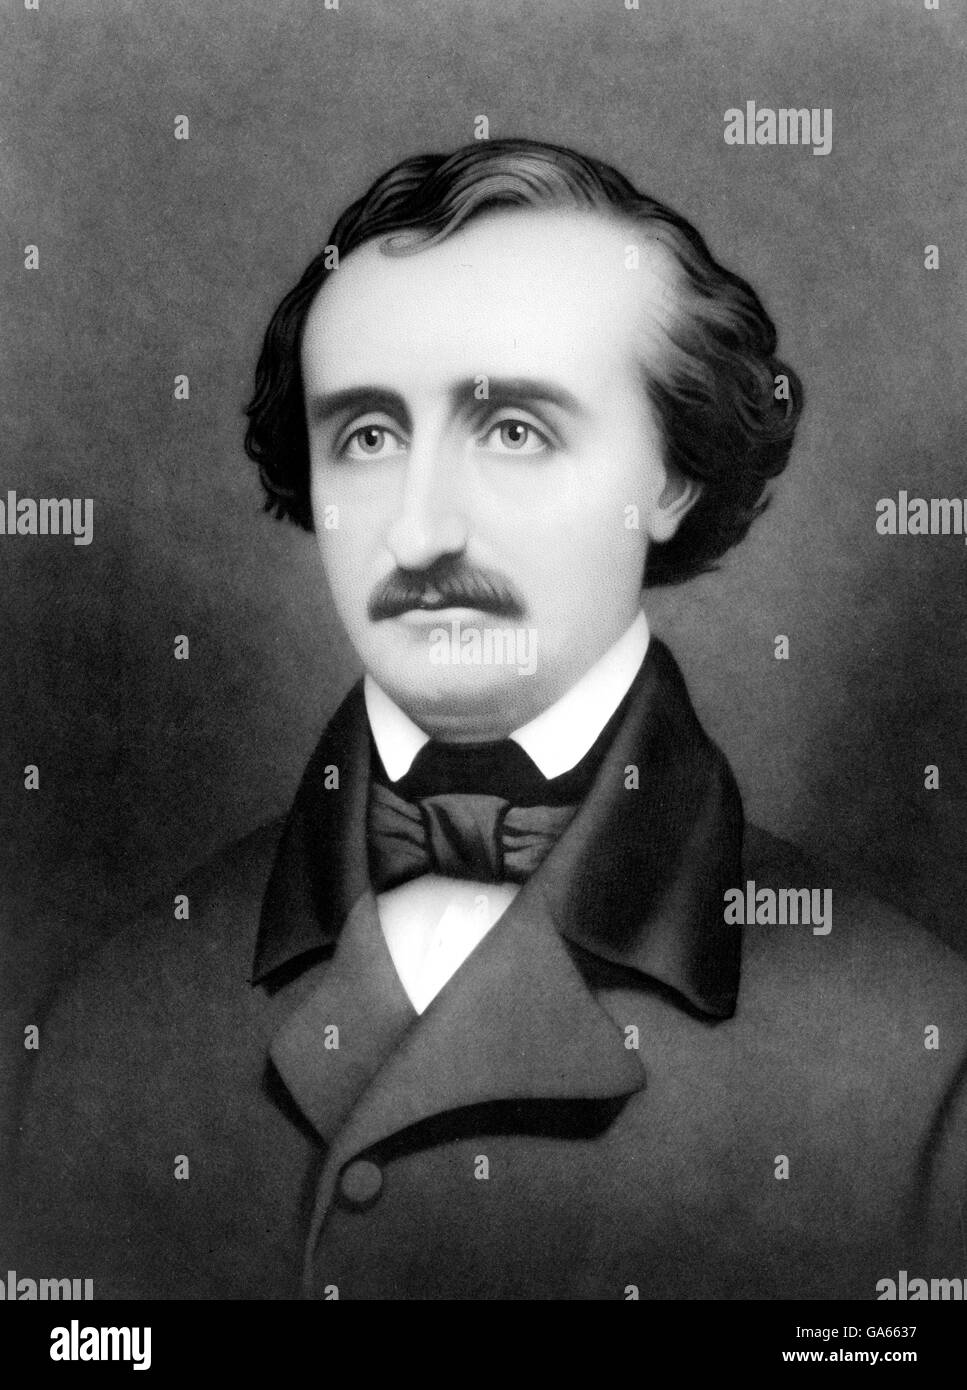 Edgar Allan Poe. Portrait of the American writer, Edgar Allan Poe (born Edgar Poe; 1809-1849). Portrait by William - Stock Image